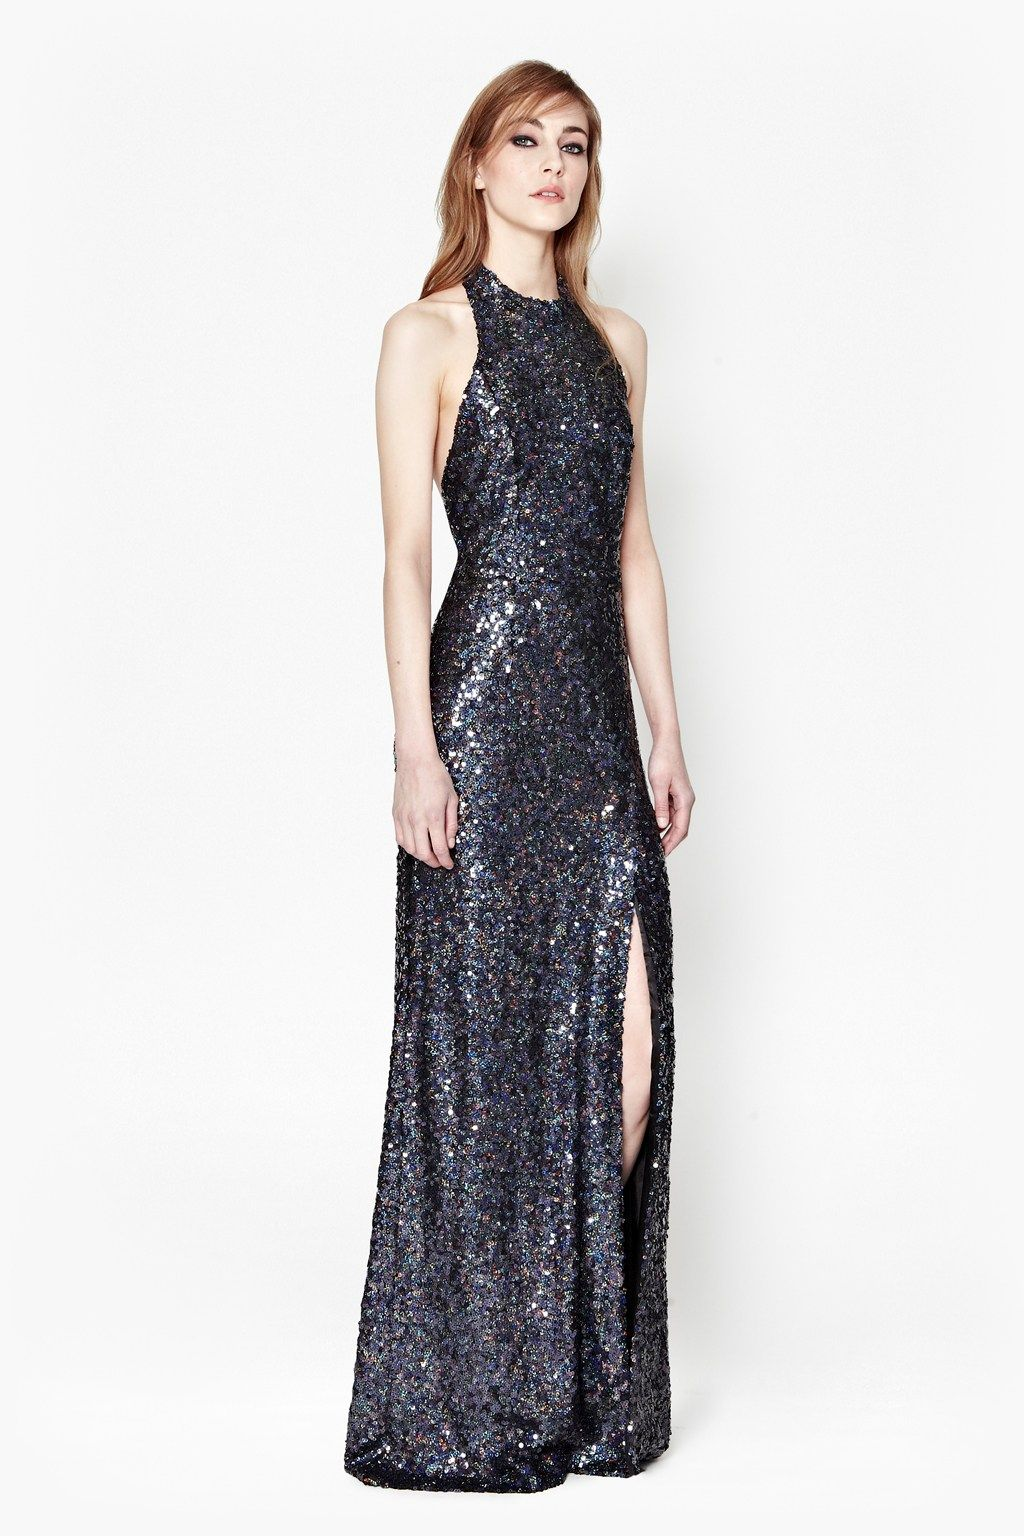 lovely hair and makeup // Lunar Sparkle Sequin Maxi Dress | Sequin Dresses | French Connection Usa